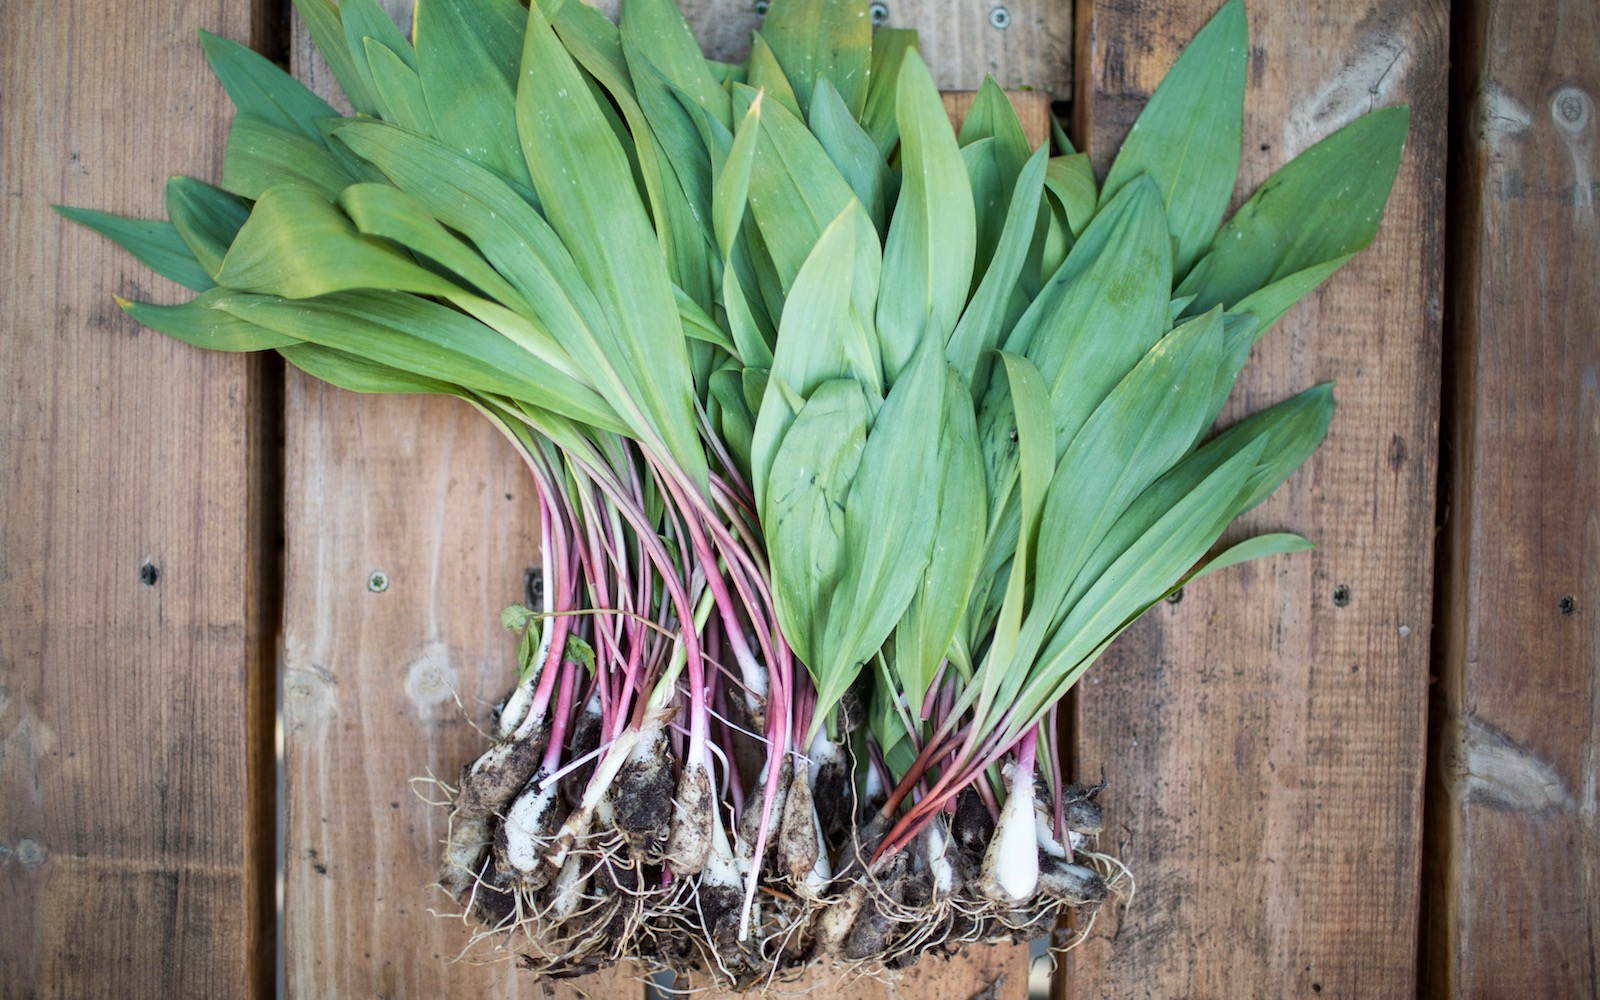 16 Chefs on Their Favorite Ways to Cook Ramps